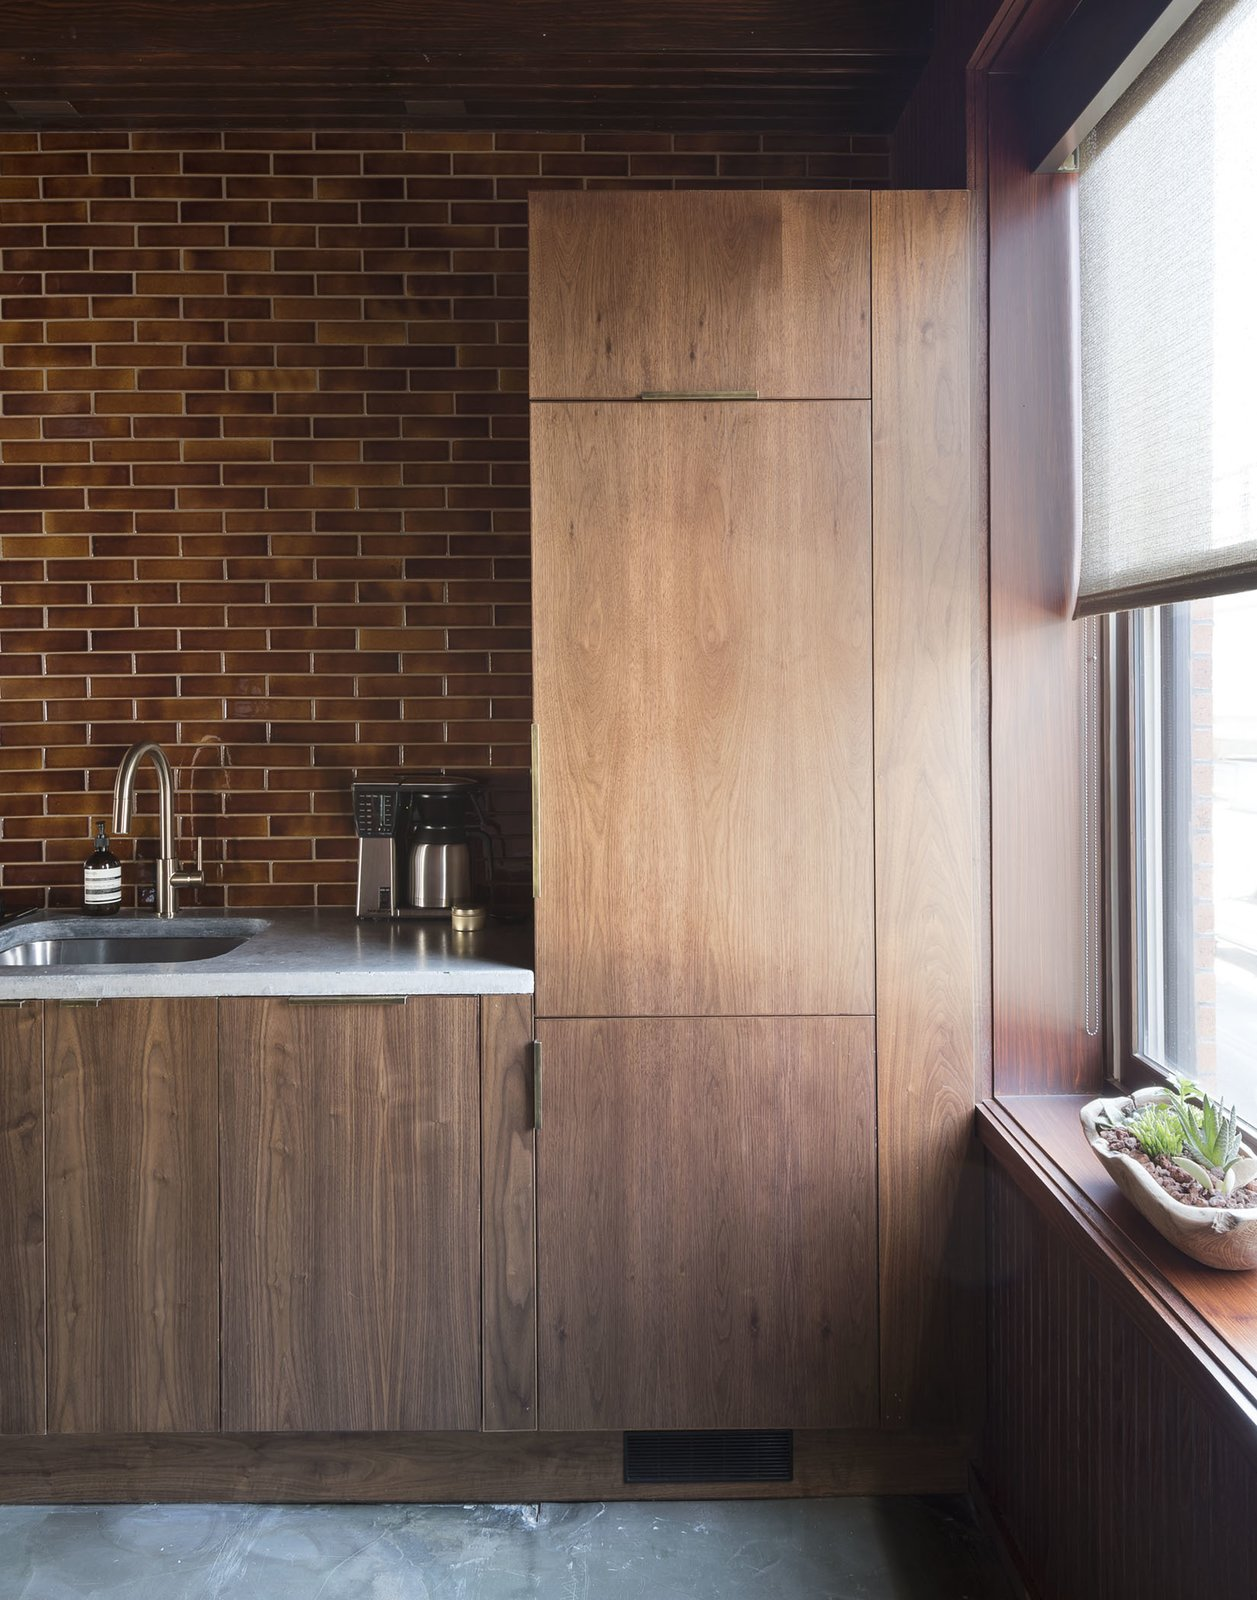 Tagged: Kitchen, Wood Cabinet, Concrete Floor, Granite Counter, Ceramic Tile Backsplashe, Accent Lighting, Drop In Sink, and Refrigerator.  Mulherin's Hotel by Daniel Olsovsky